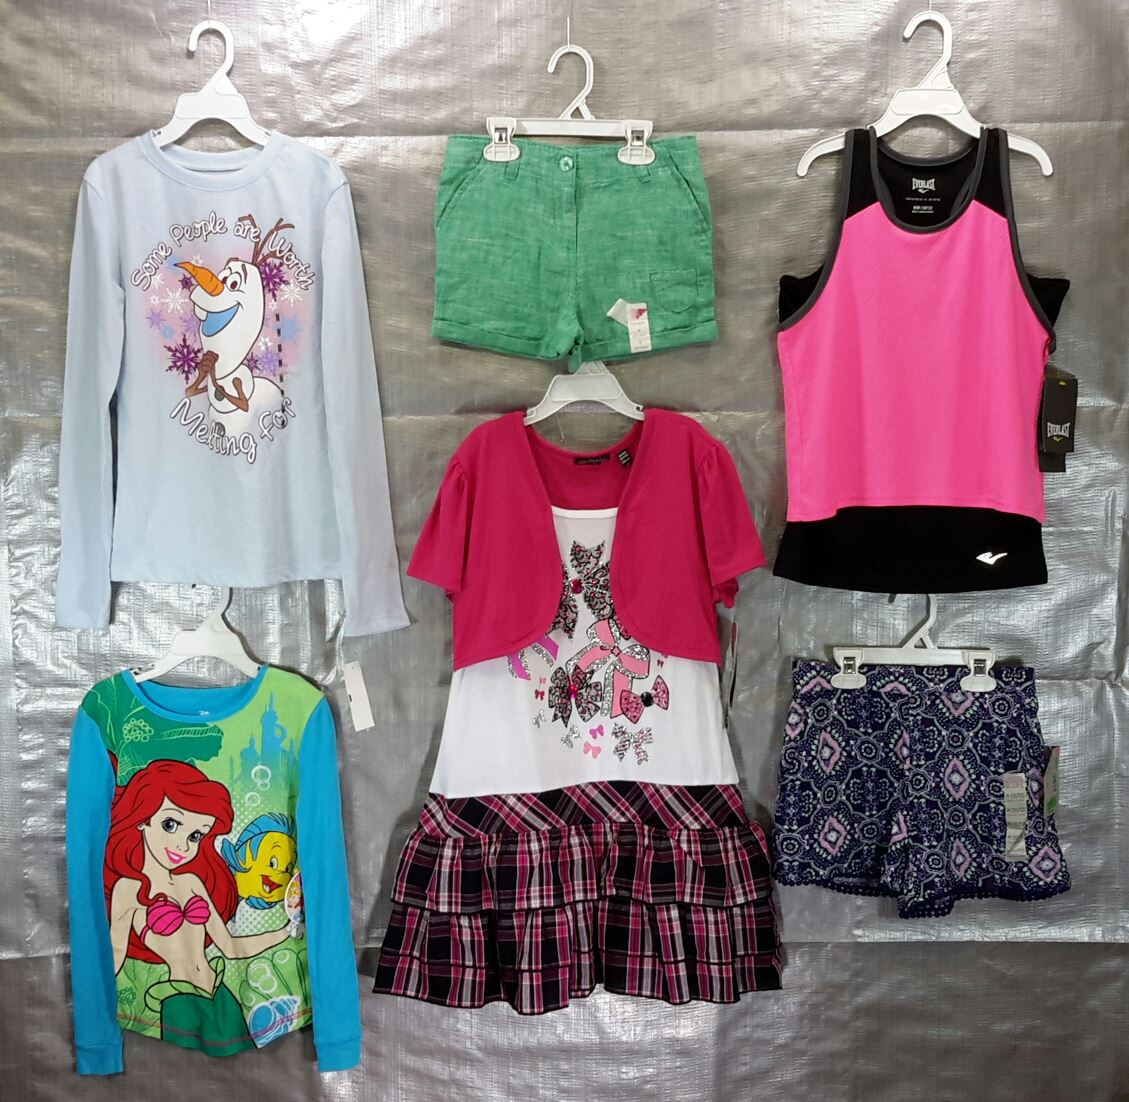 Wholesale Sample Lot of Assorted Brand New Children's GIRL CLOTHING 50 Pieces